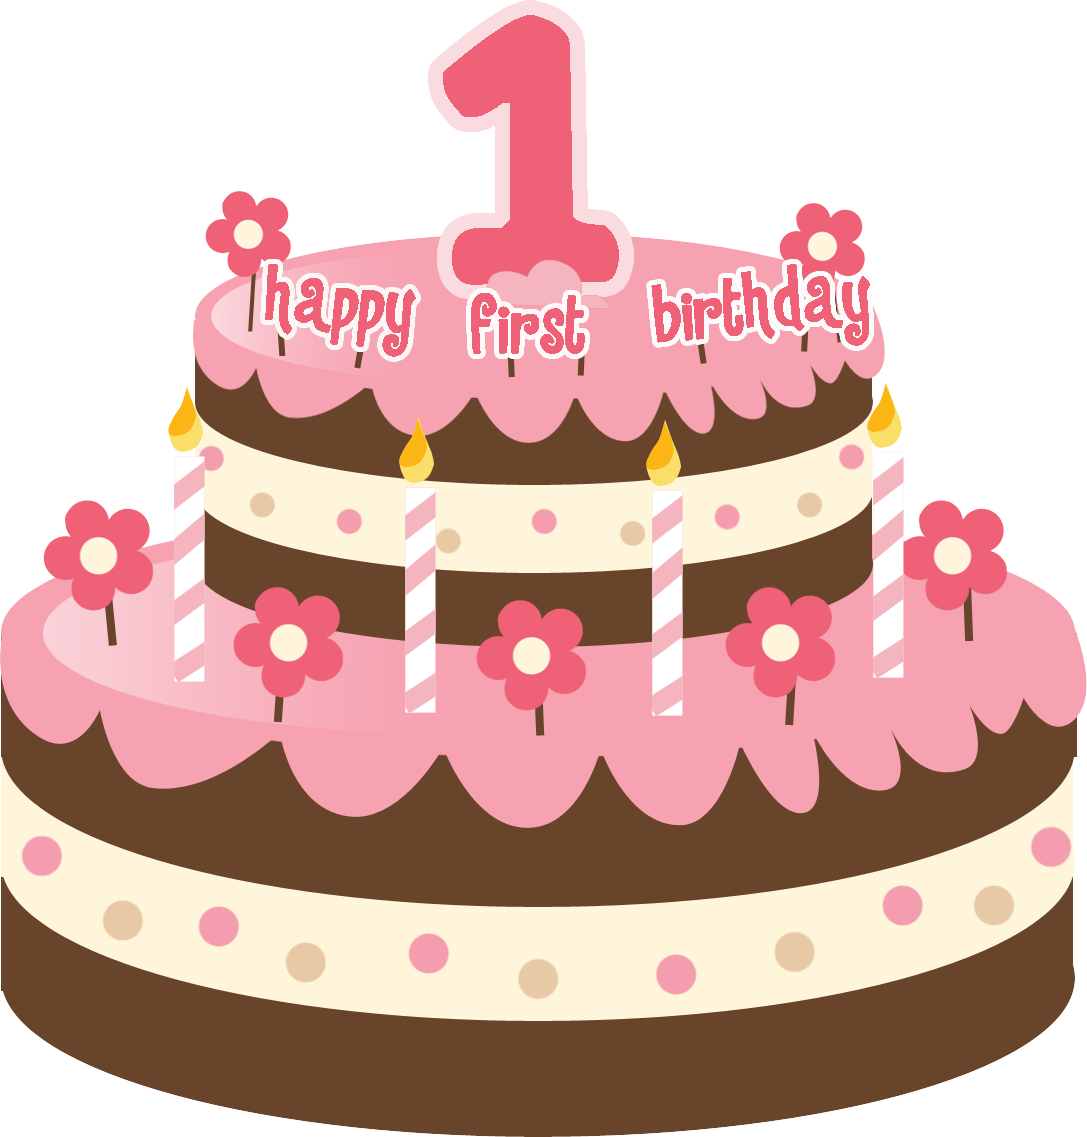 Birthday Cake Clip Art Png Clipart Panda Free Clipart Images